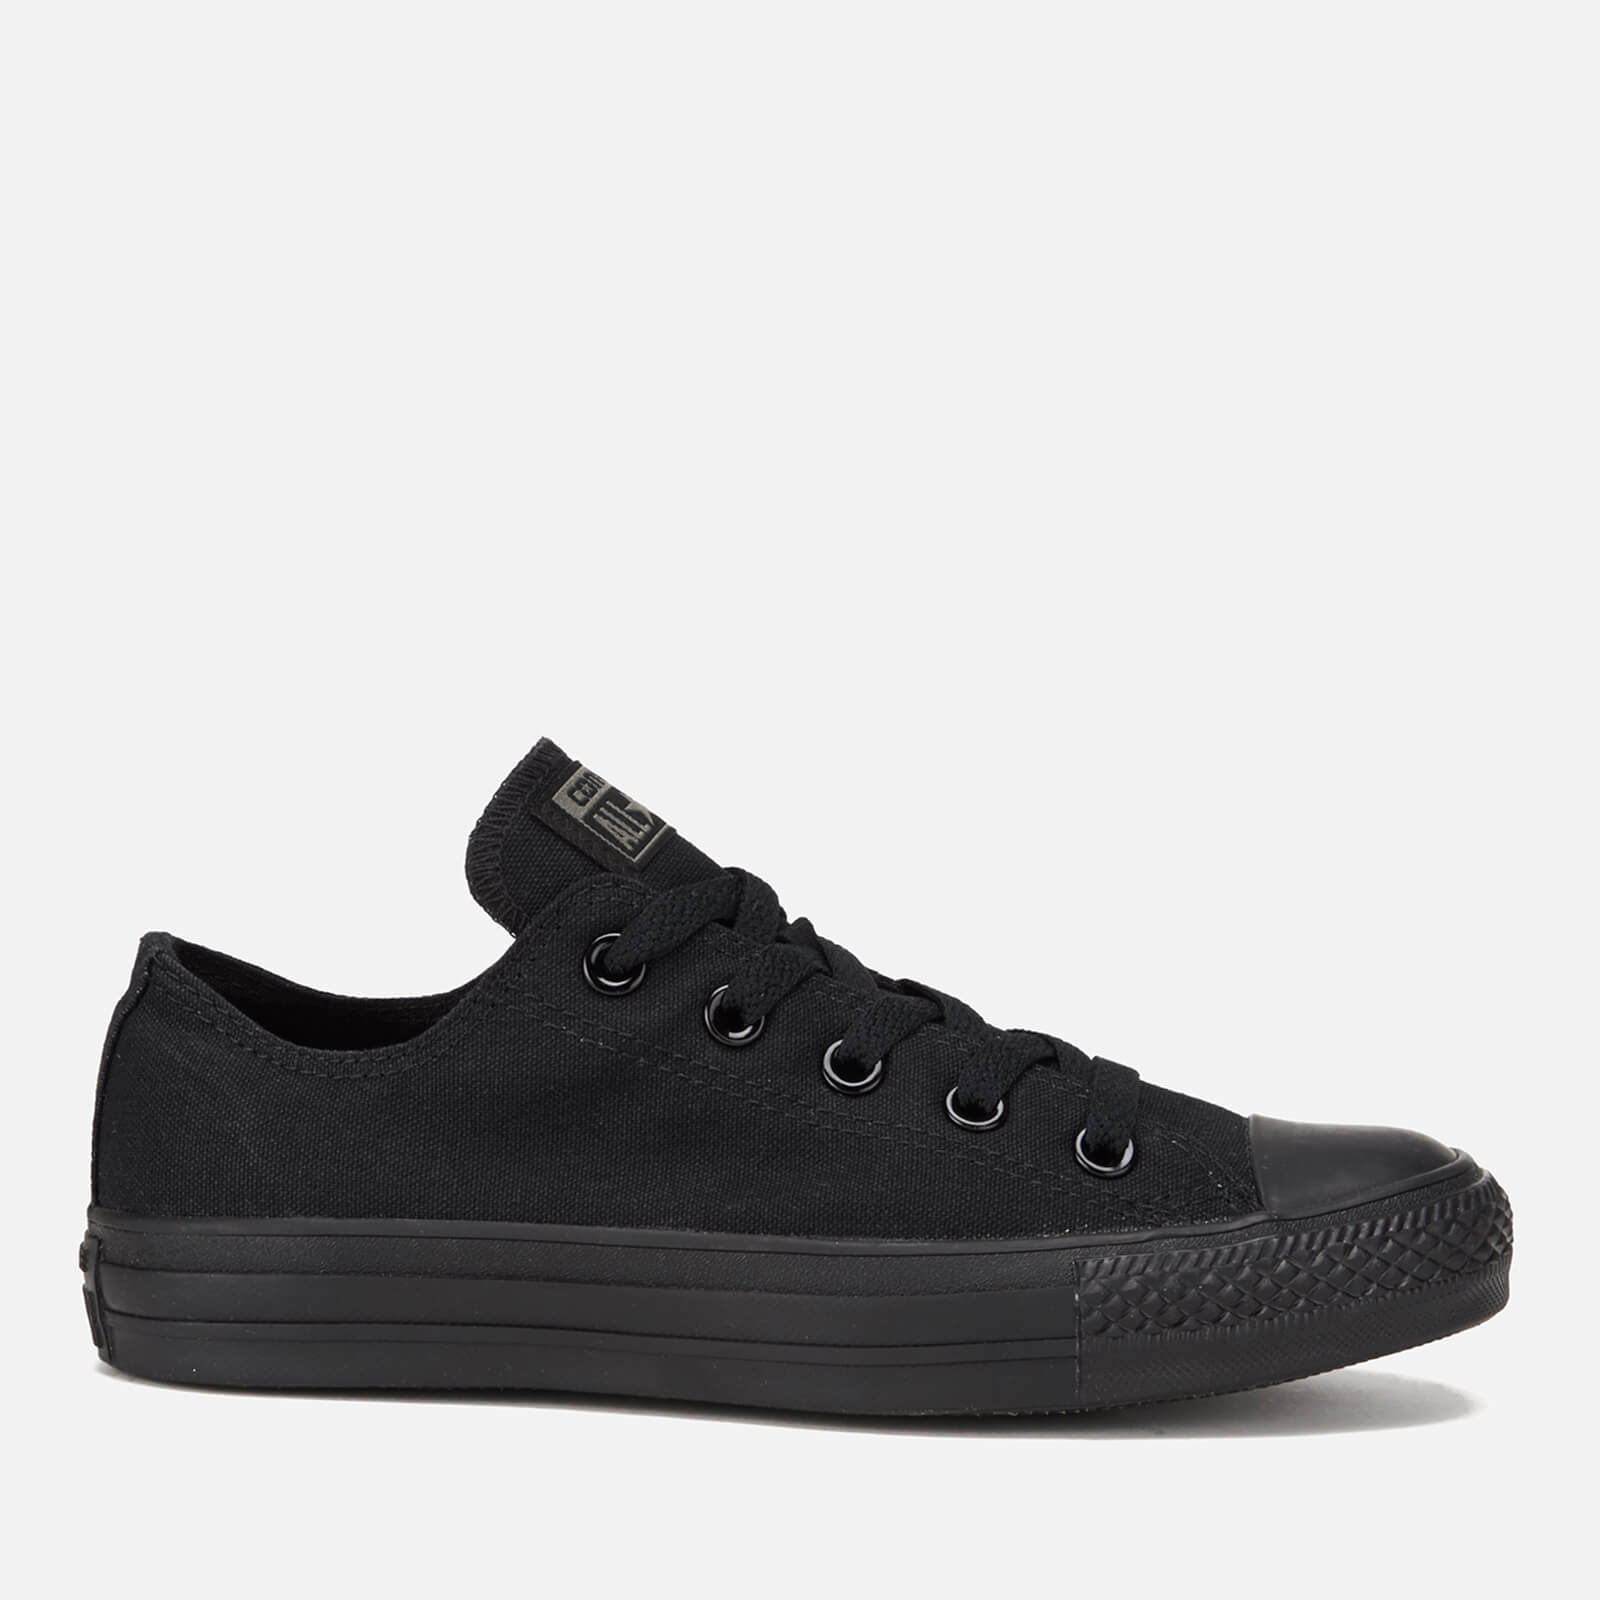 Converse Chuck Taylor All Star Ox Canvas Trainers Black Monochrome Uk 6